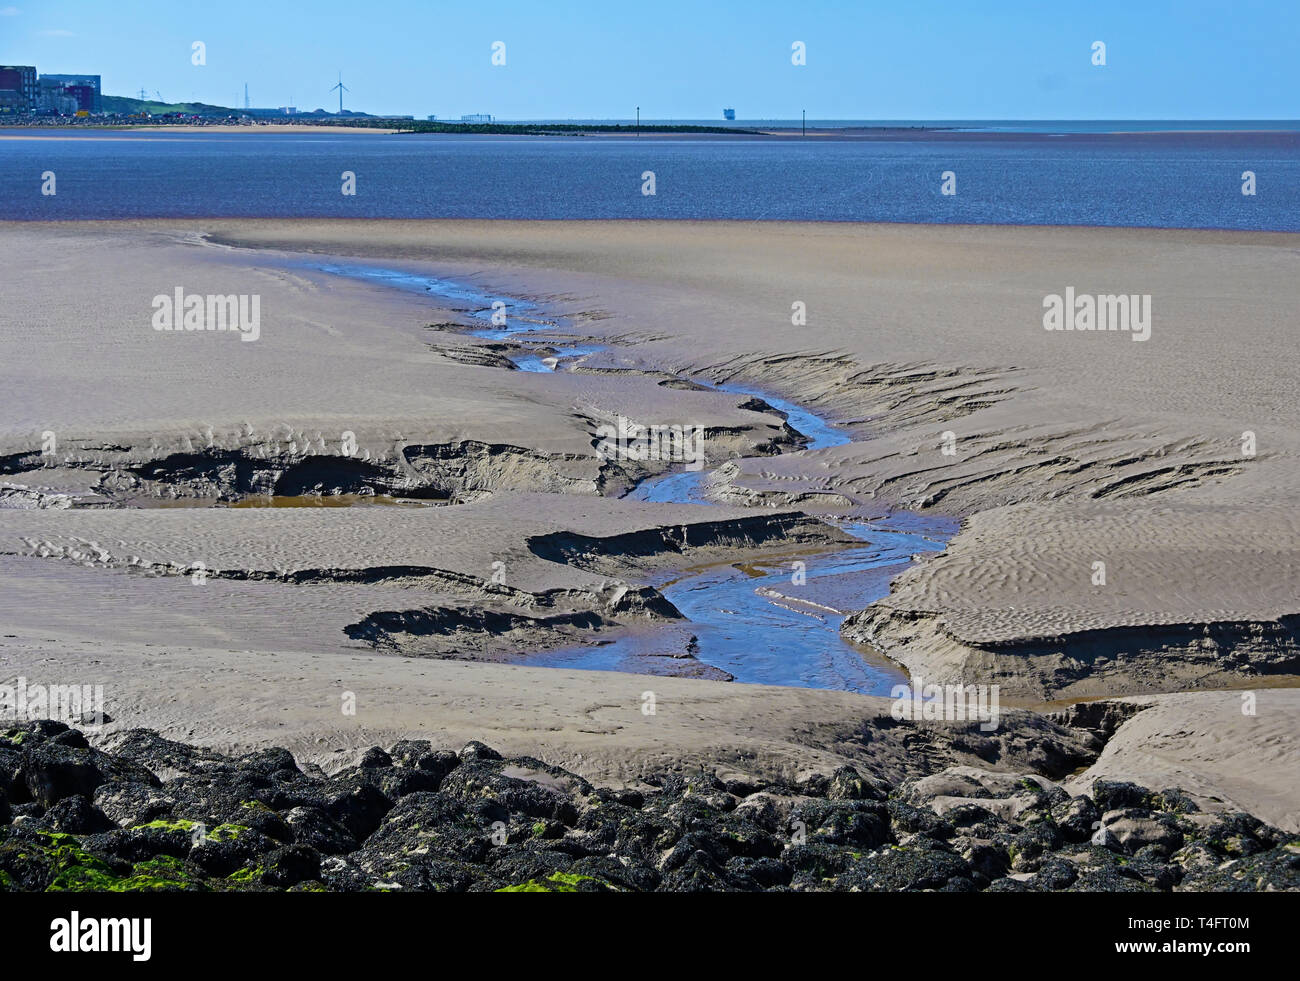 Patterns in the sand at low tide. Morecambe Bay, Lancashire, England, United Kingdom, Europe. Stock Photo